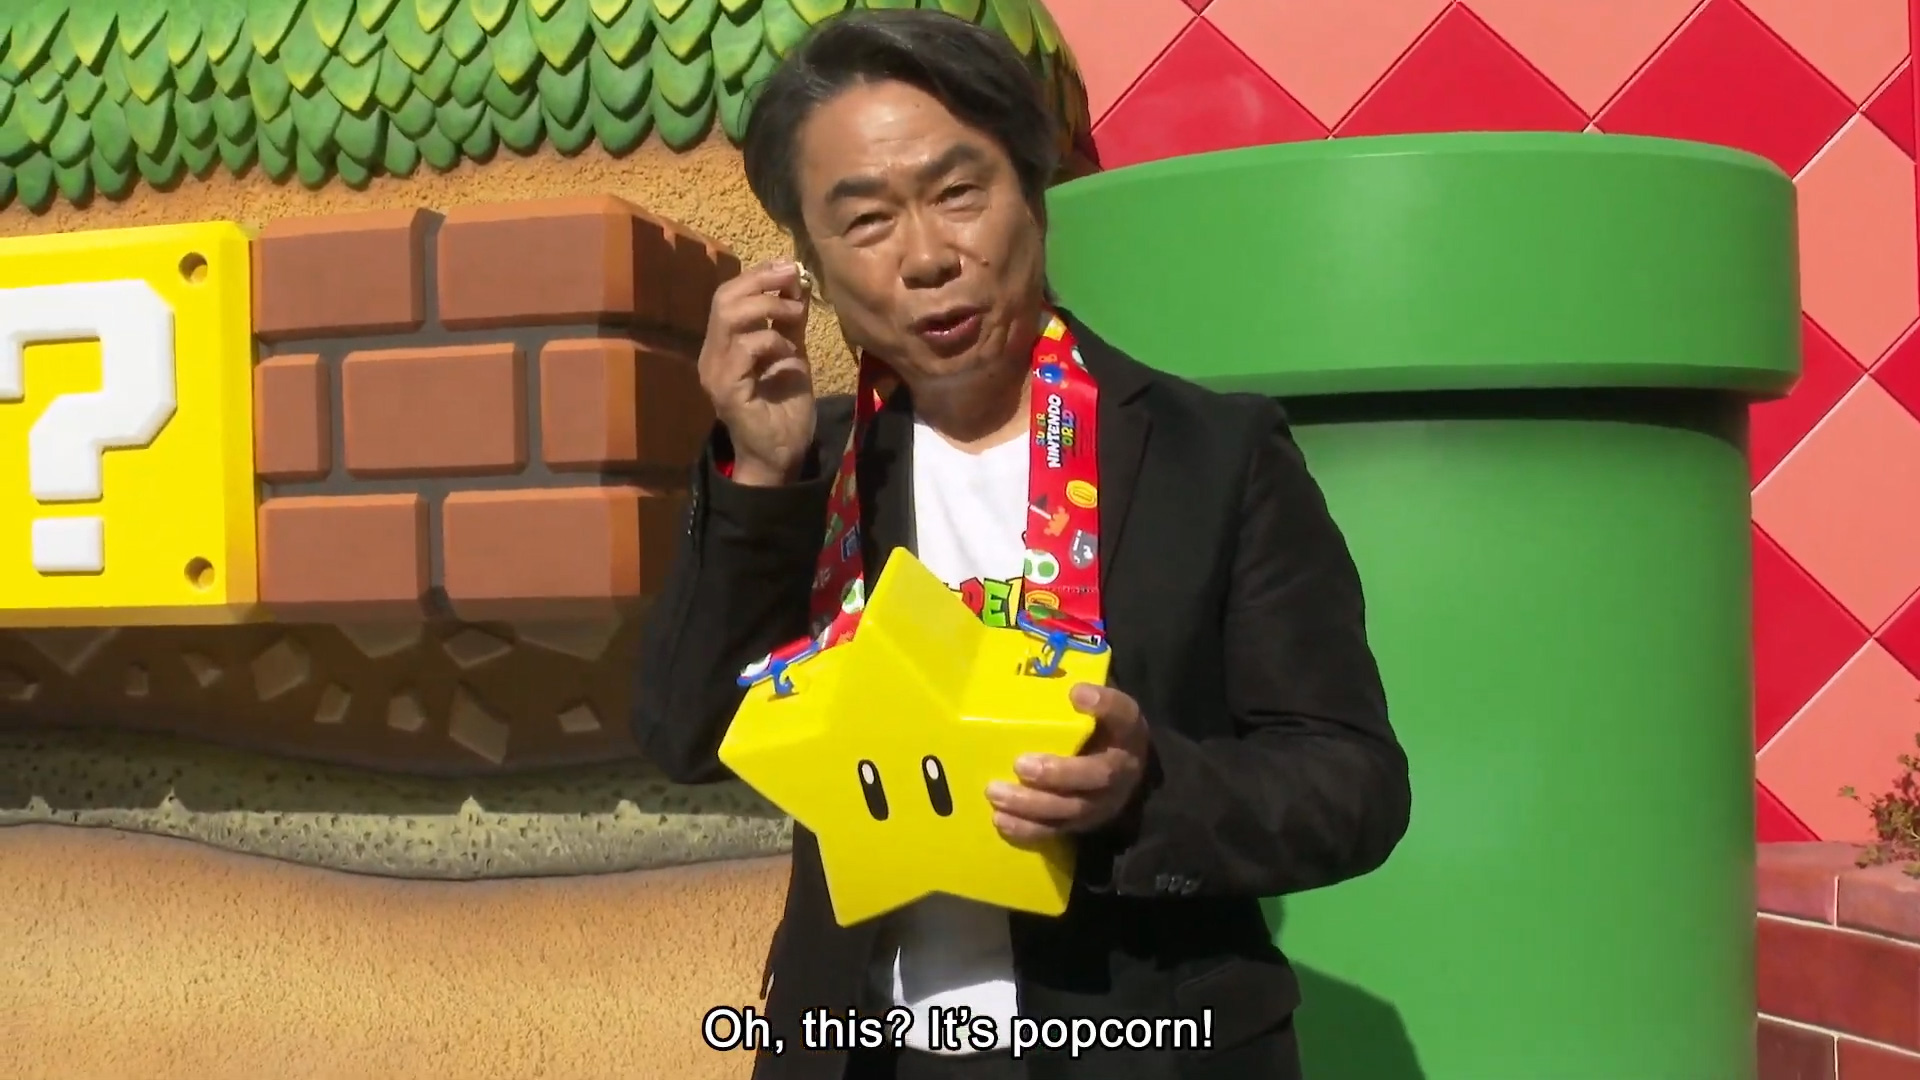 Let's hang out and watch today's Nintendo Direct screenshot